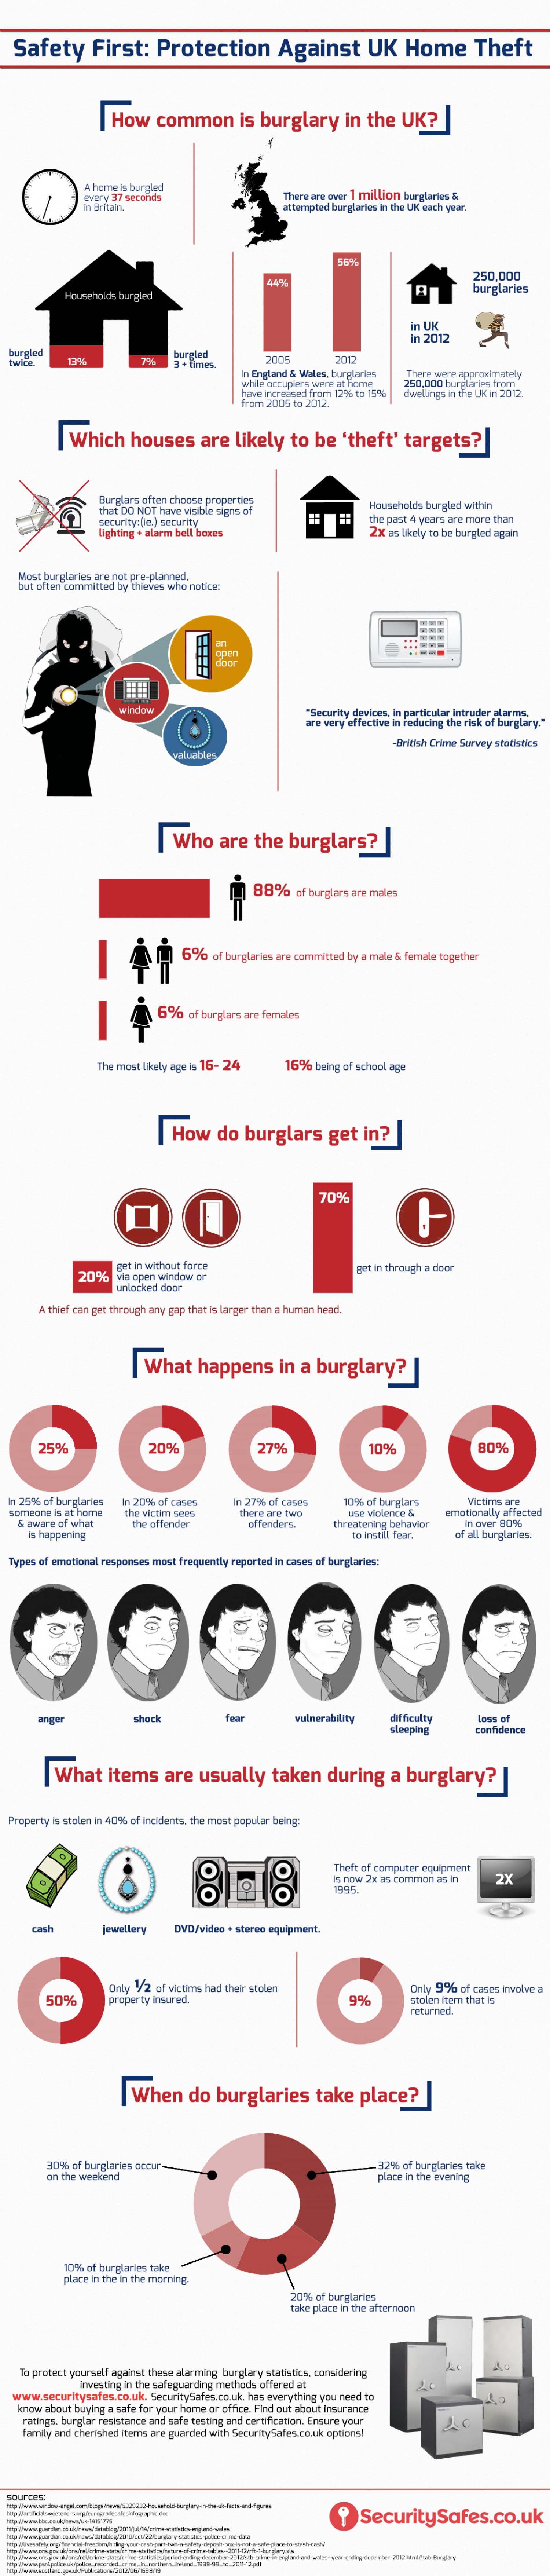 Safety First: Protection Against UK Home Theft Infographic